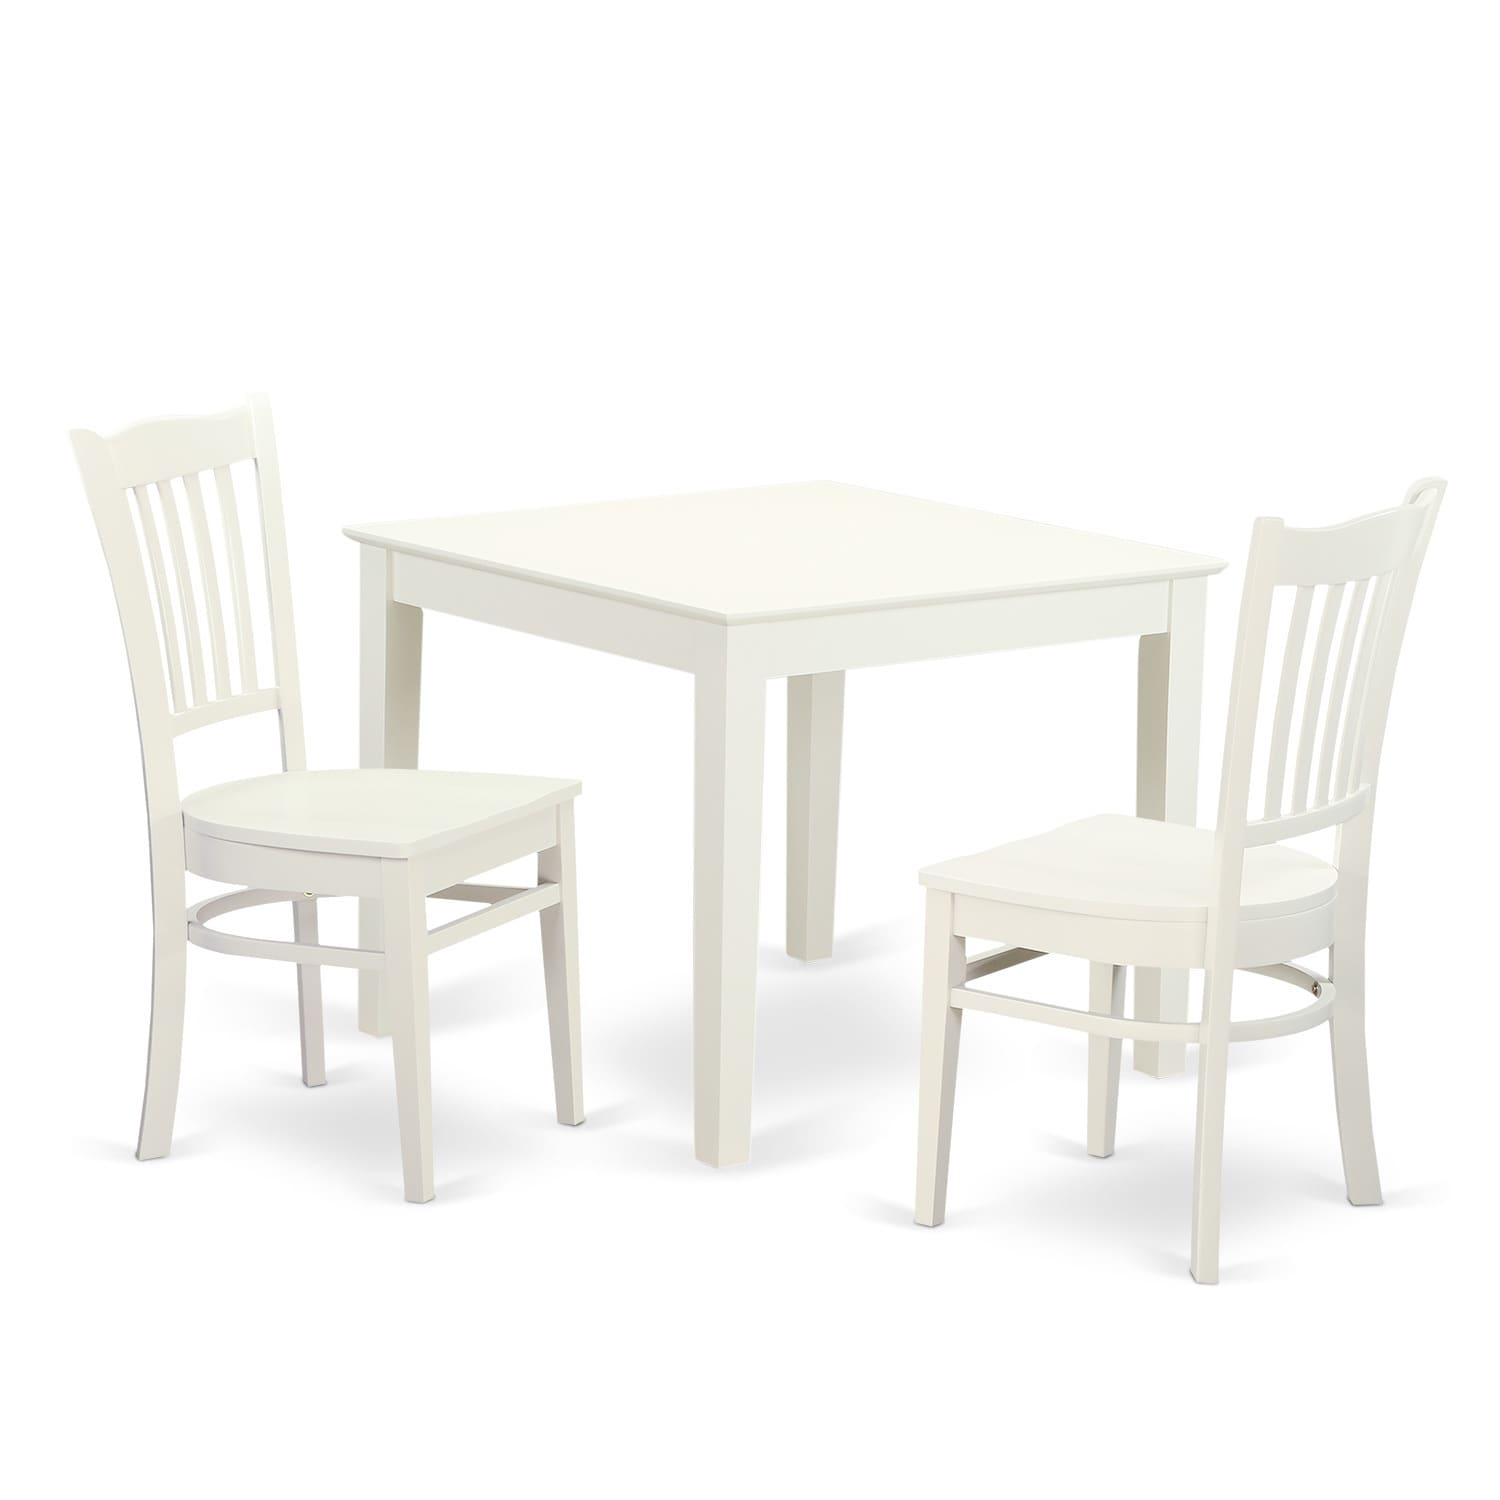 OXGR3-W 3-Piece breakfast nook table and 2 wood dining ro...